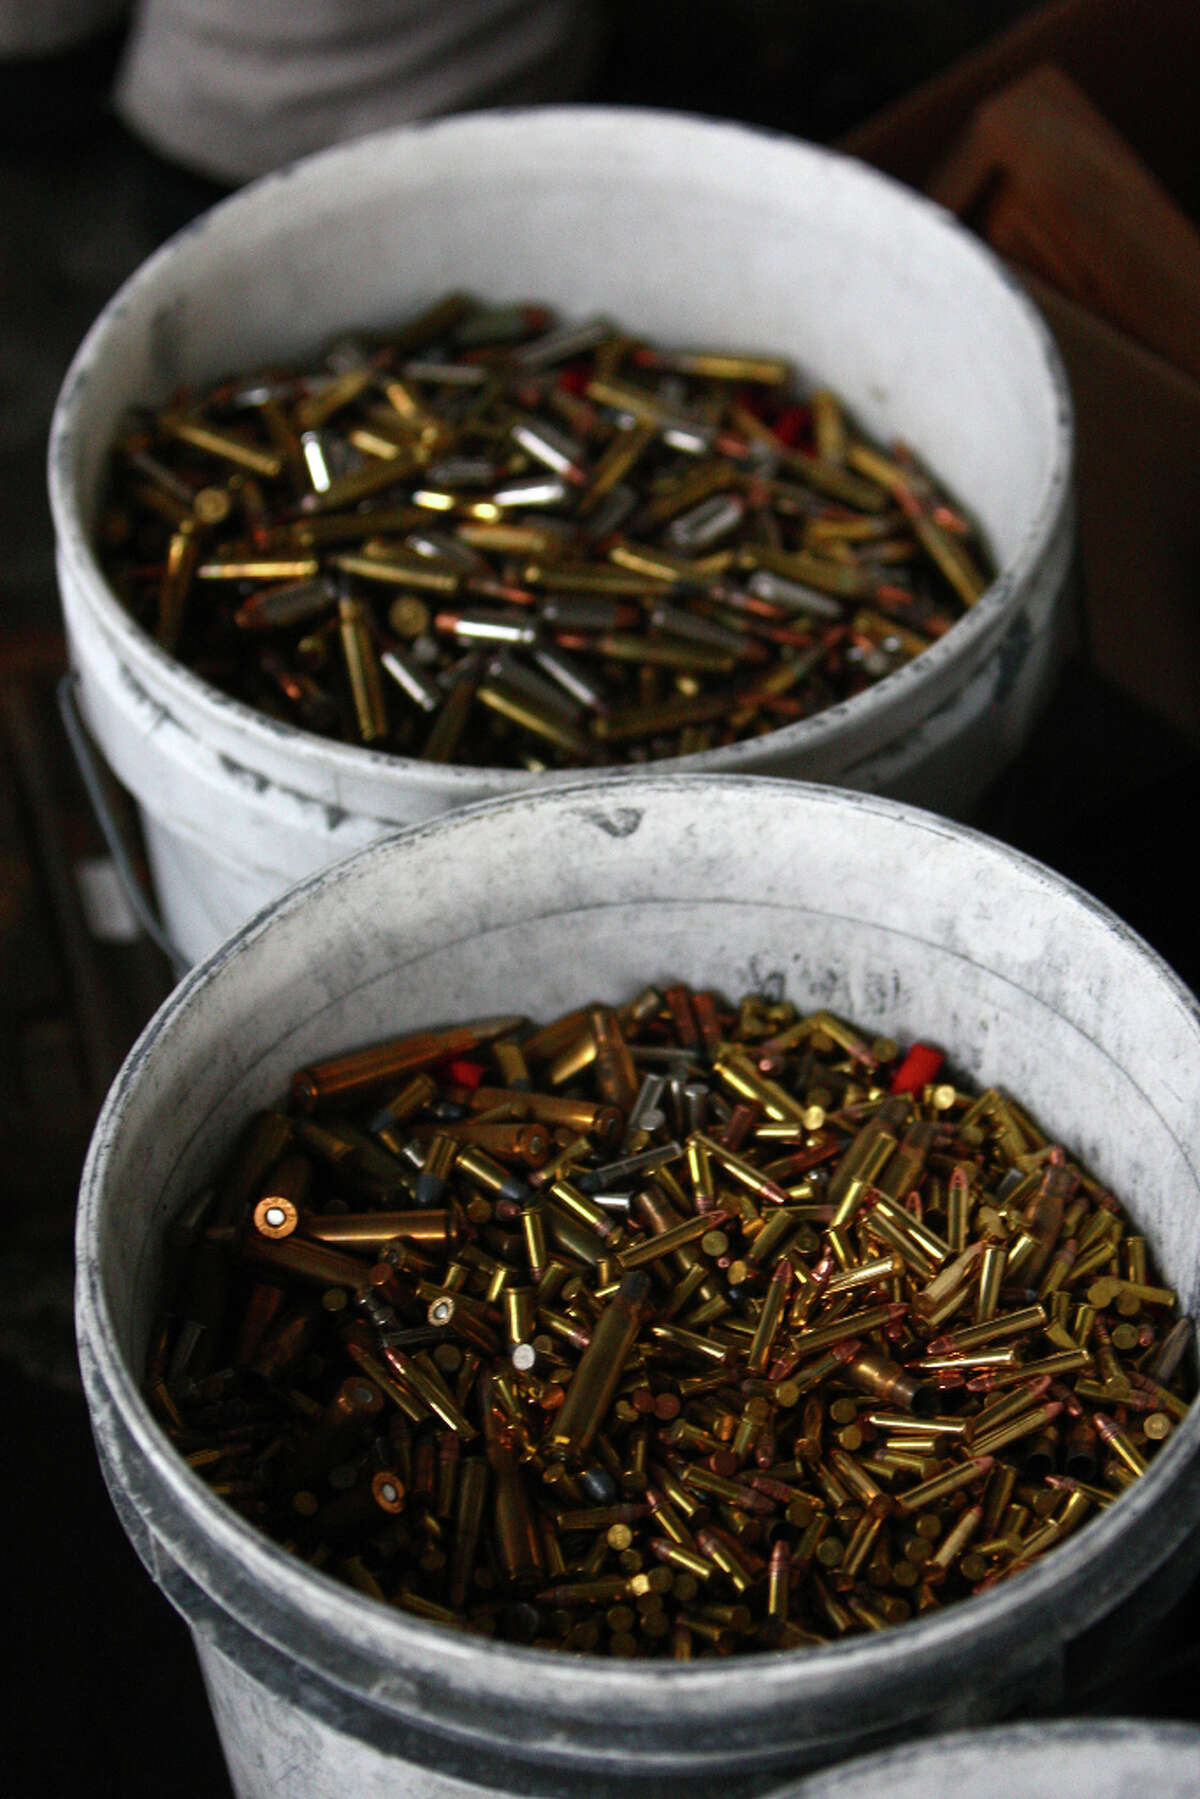 Buckets of collected ammunition are shown during the City of Seattle's gun buy back program on Saturday, January 26, 2013. The program handed out $80,000 worth of gift cards in exchange for weapons brought in by the public.